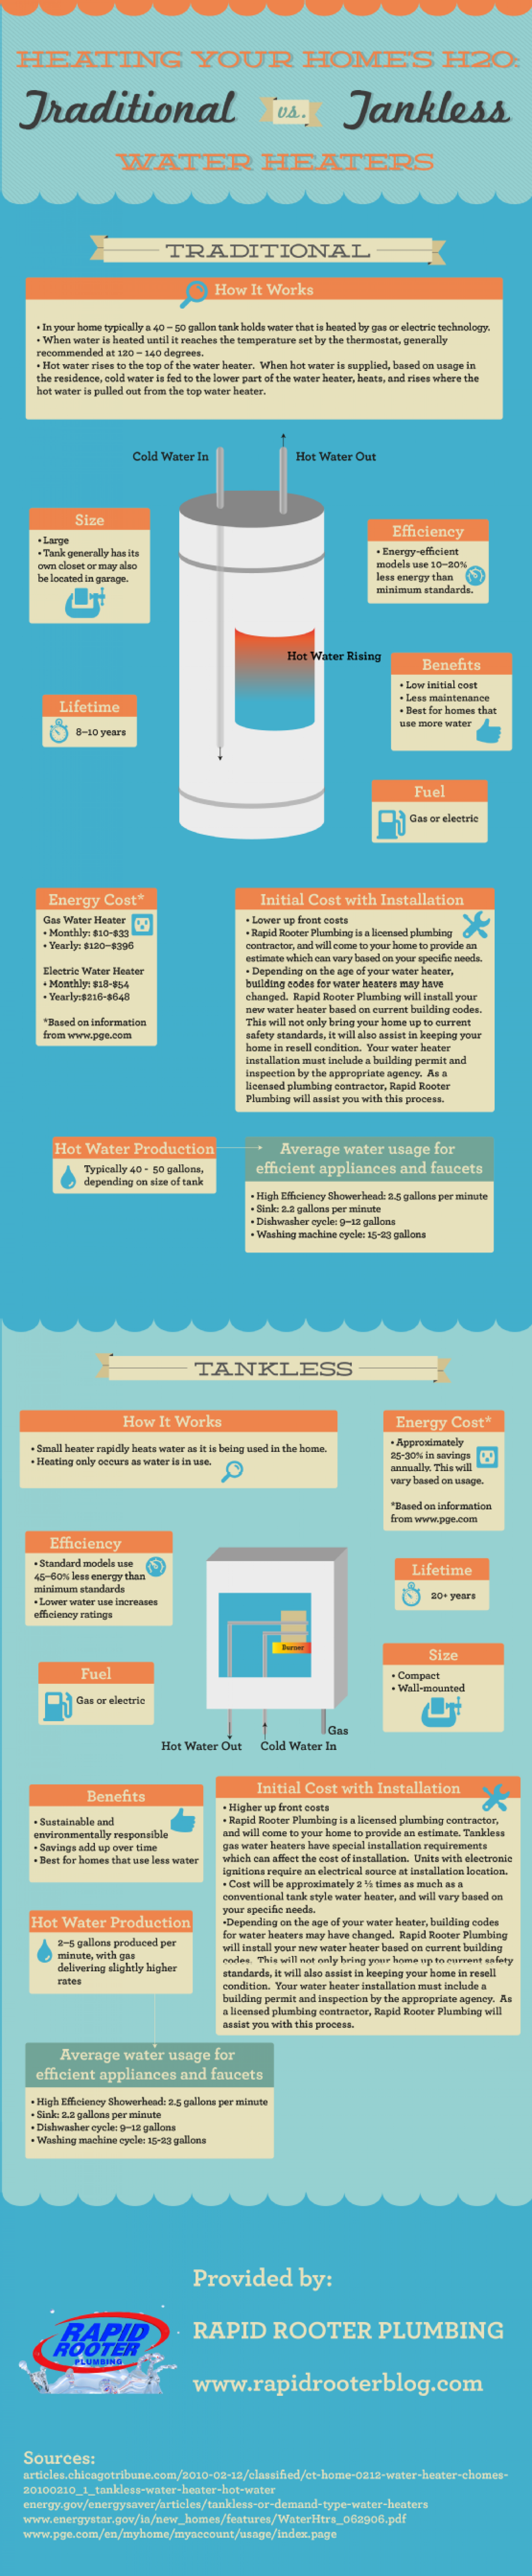 Traditional vs. Tankless Water Heaters Infographic